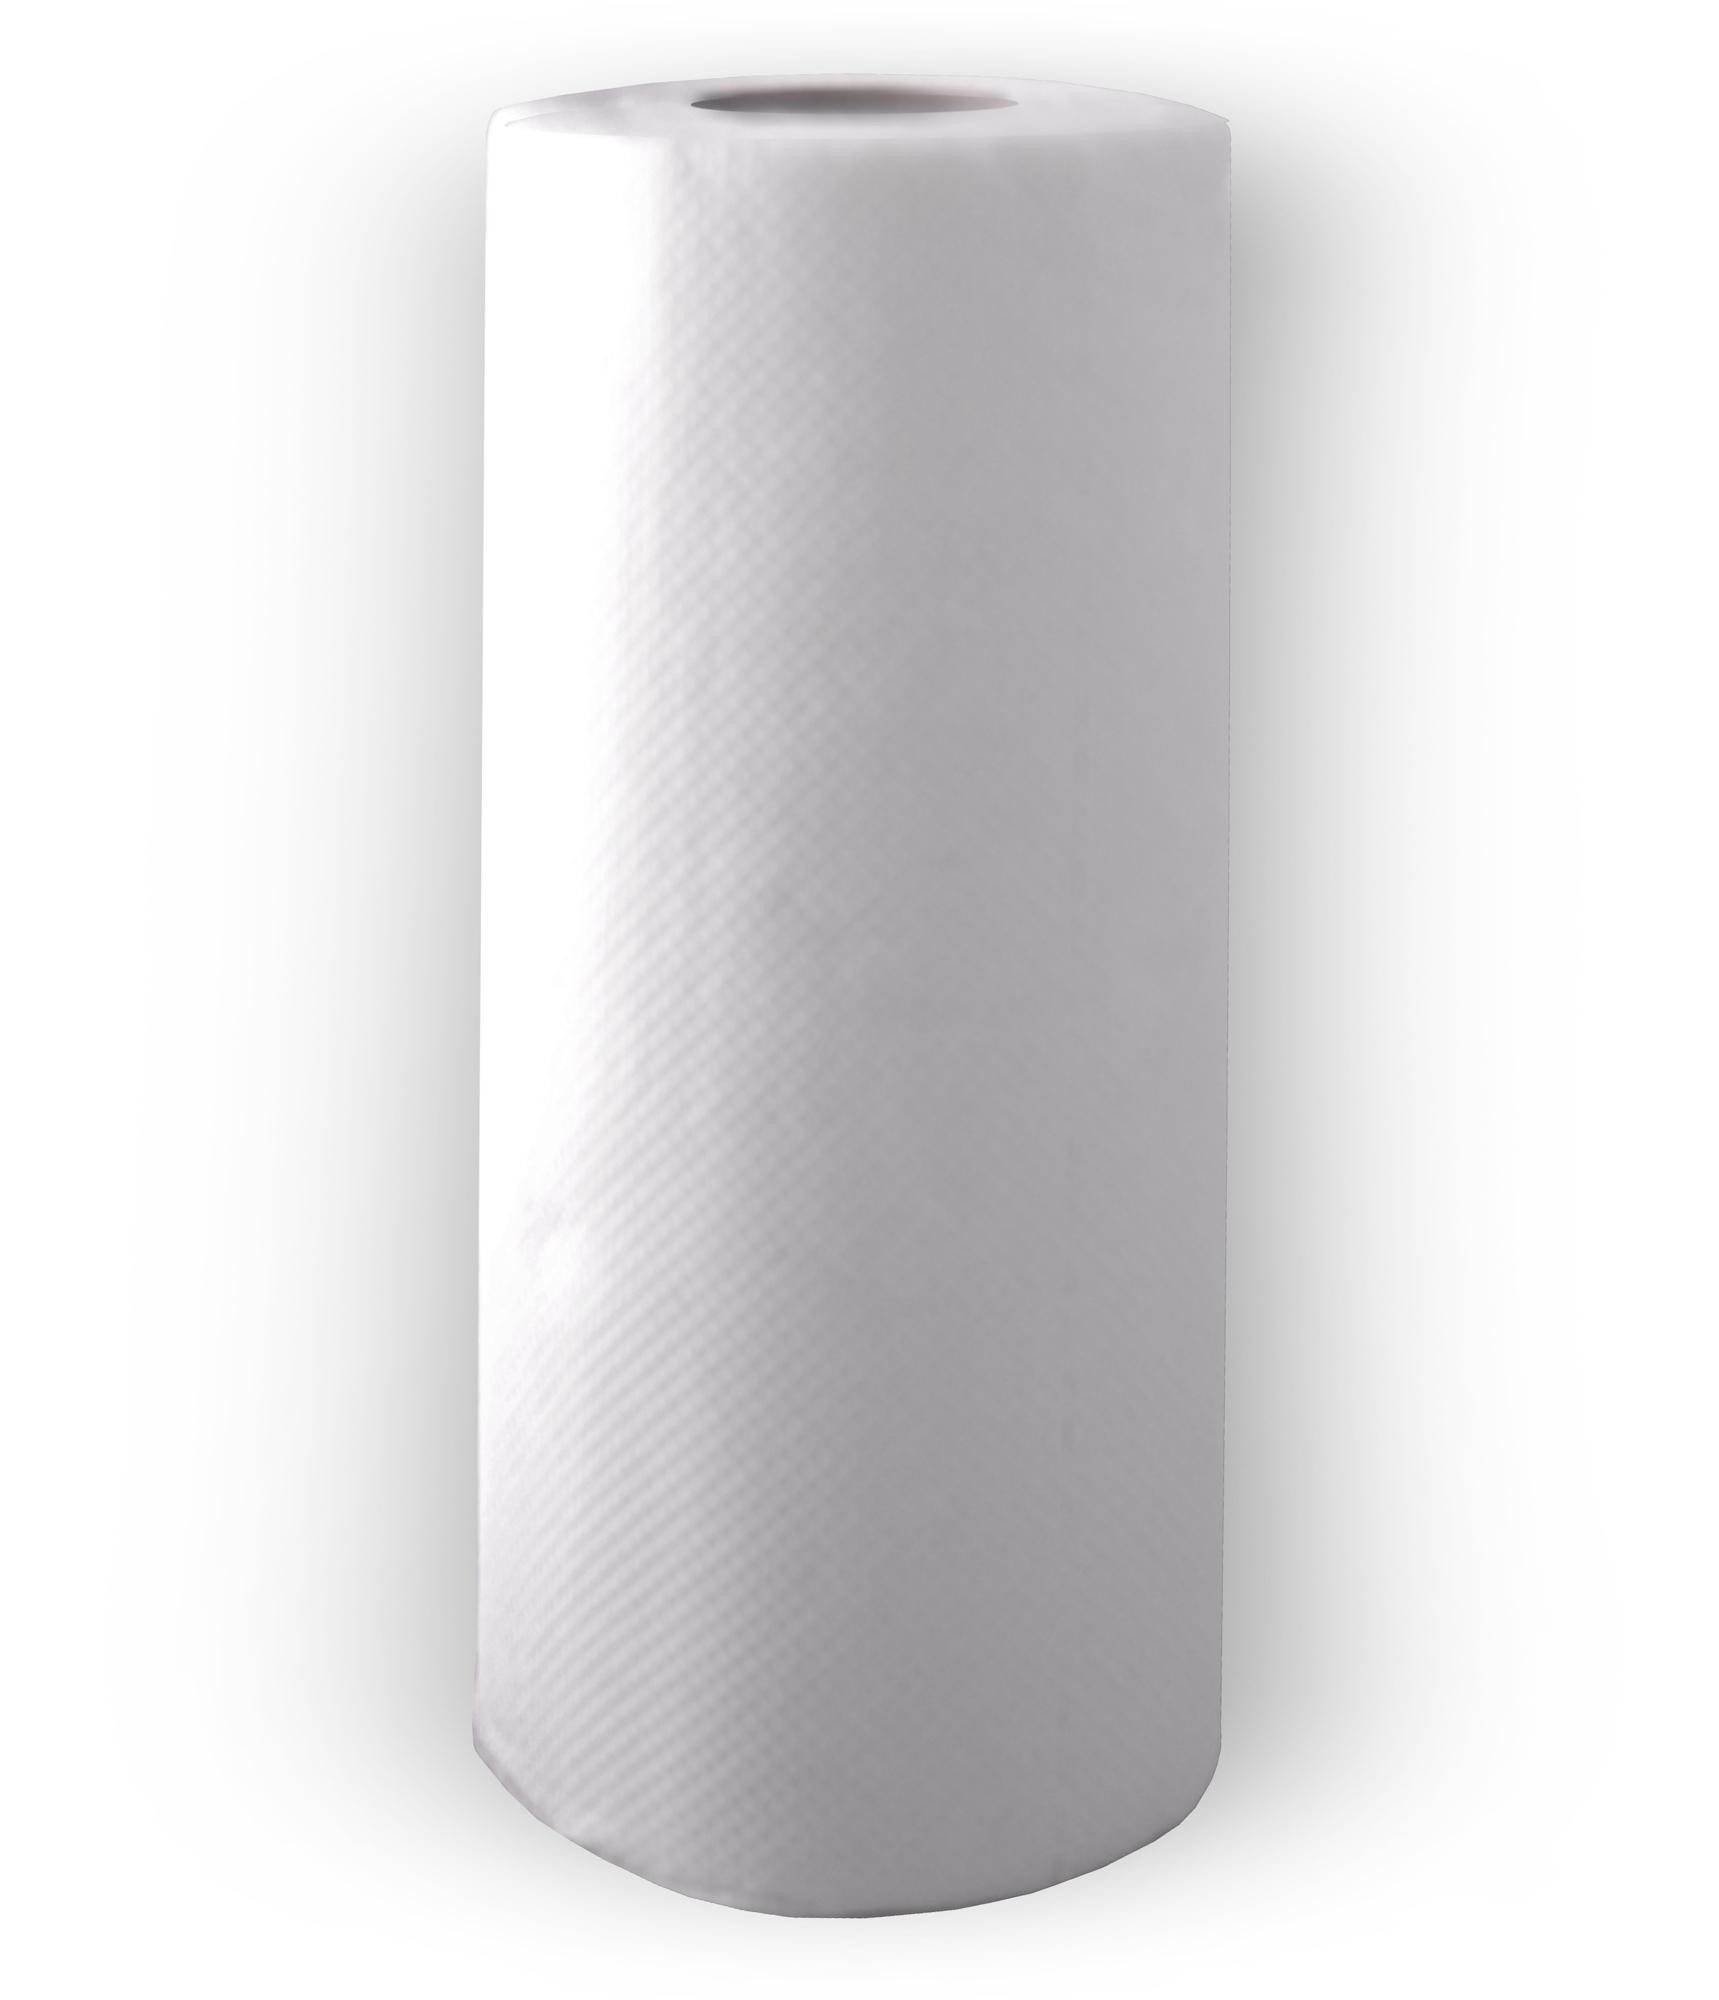 Household Kitchen Paper Roll Towels 2-ply 8x4rolls